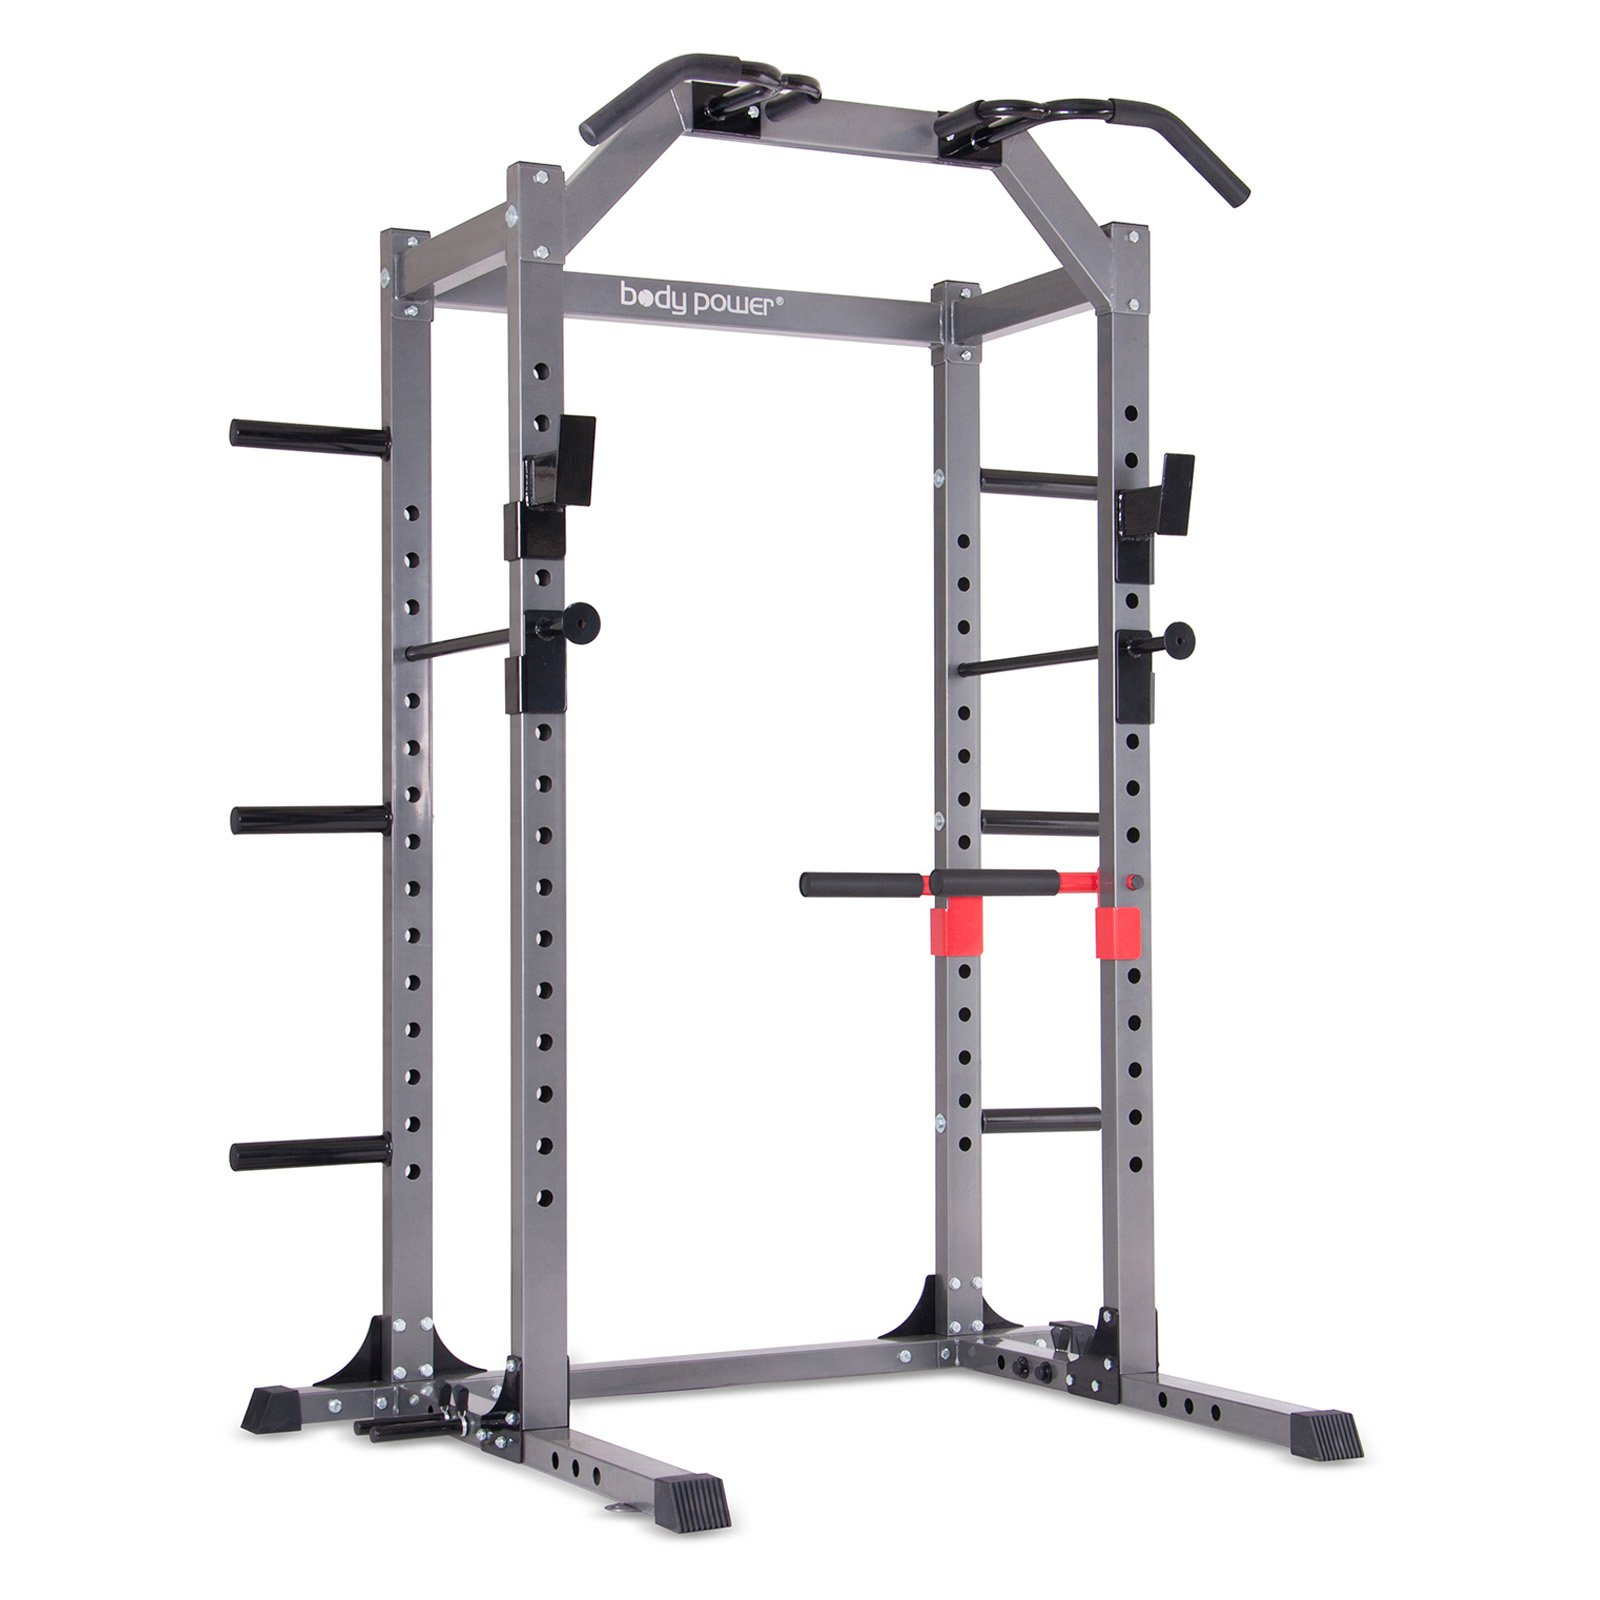 Body Power PBC5380 Deluxe Power Rack Cage System by HUPA International Inc